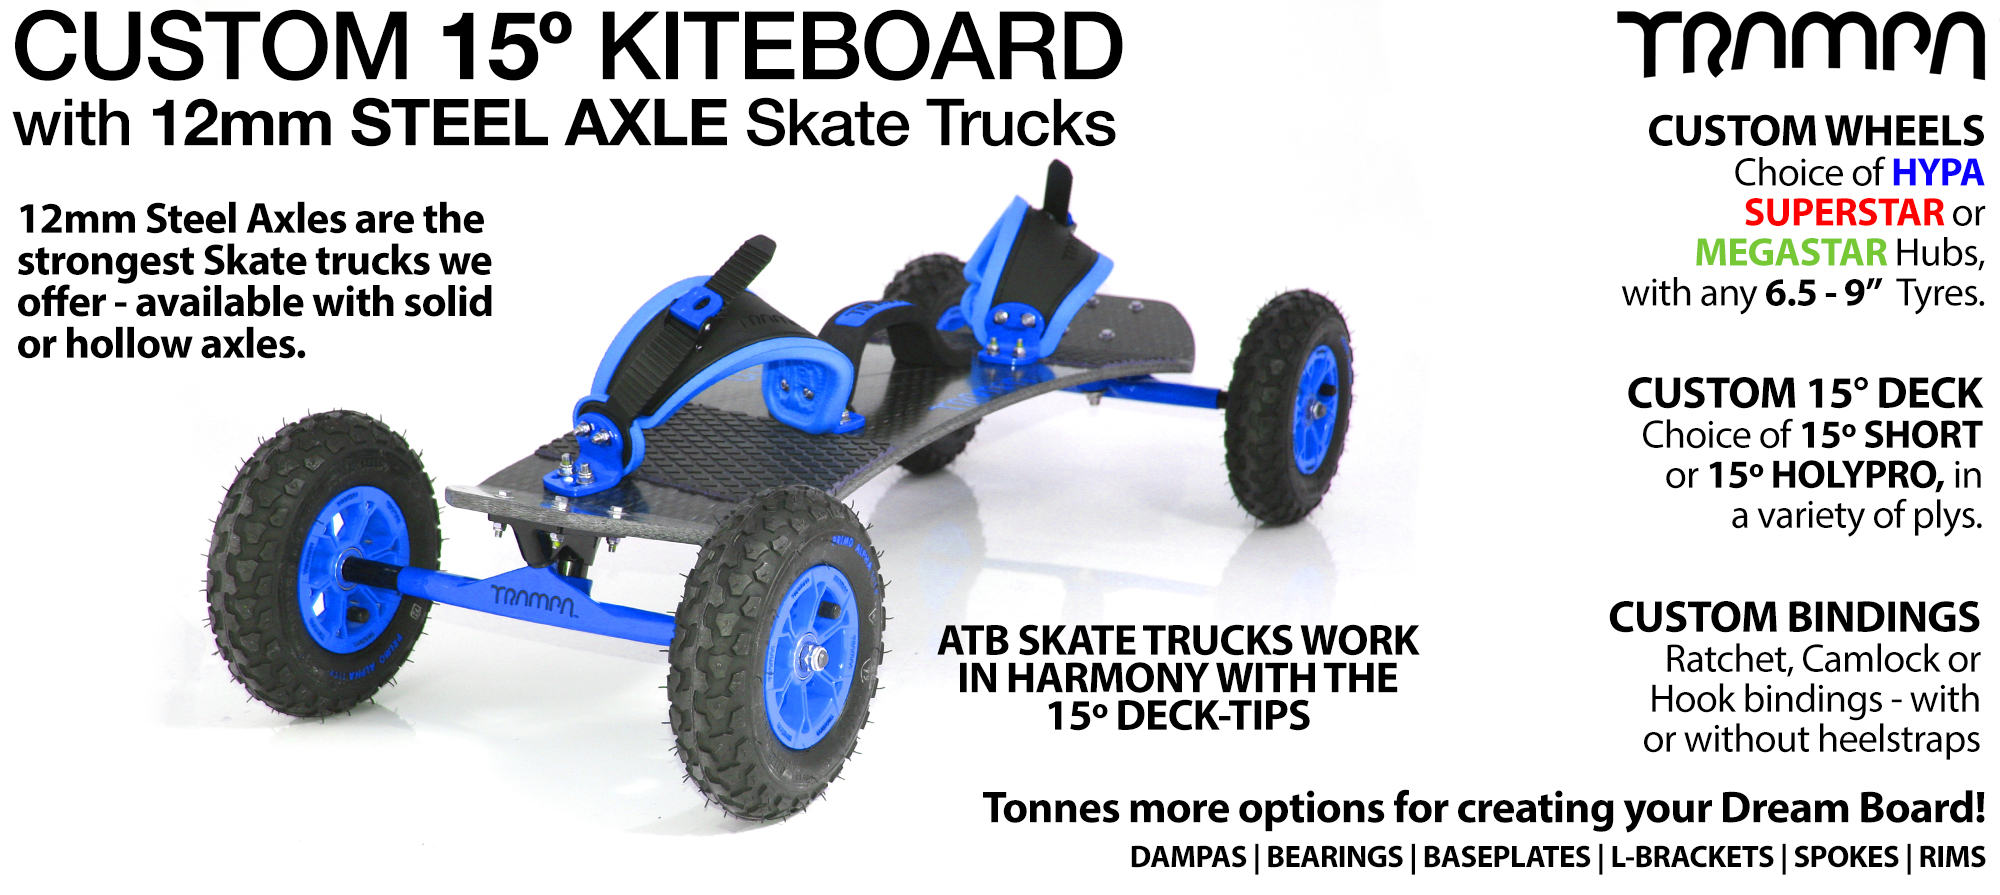 TRAMPA Kiteboard - 12mm Axle Skate Trucks